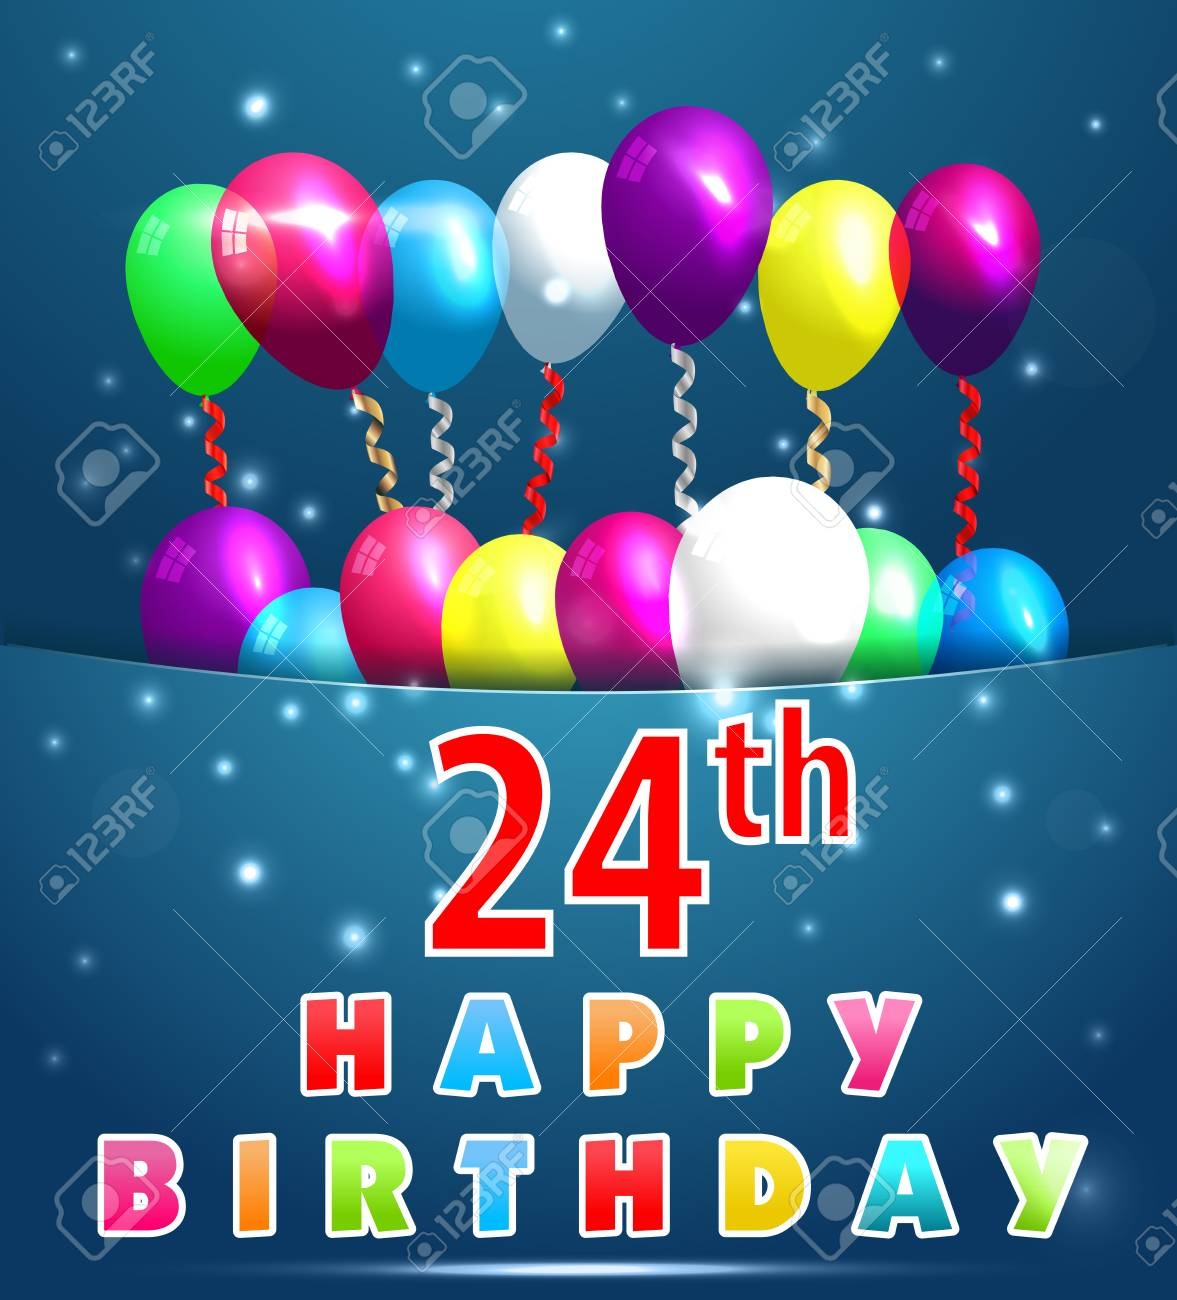 24 Year Happy Birthday Card With Balloons And Ribbons 25th Stock Vector